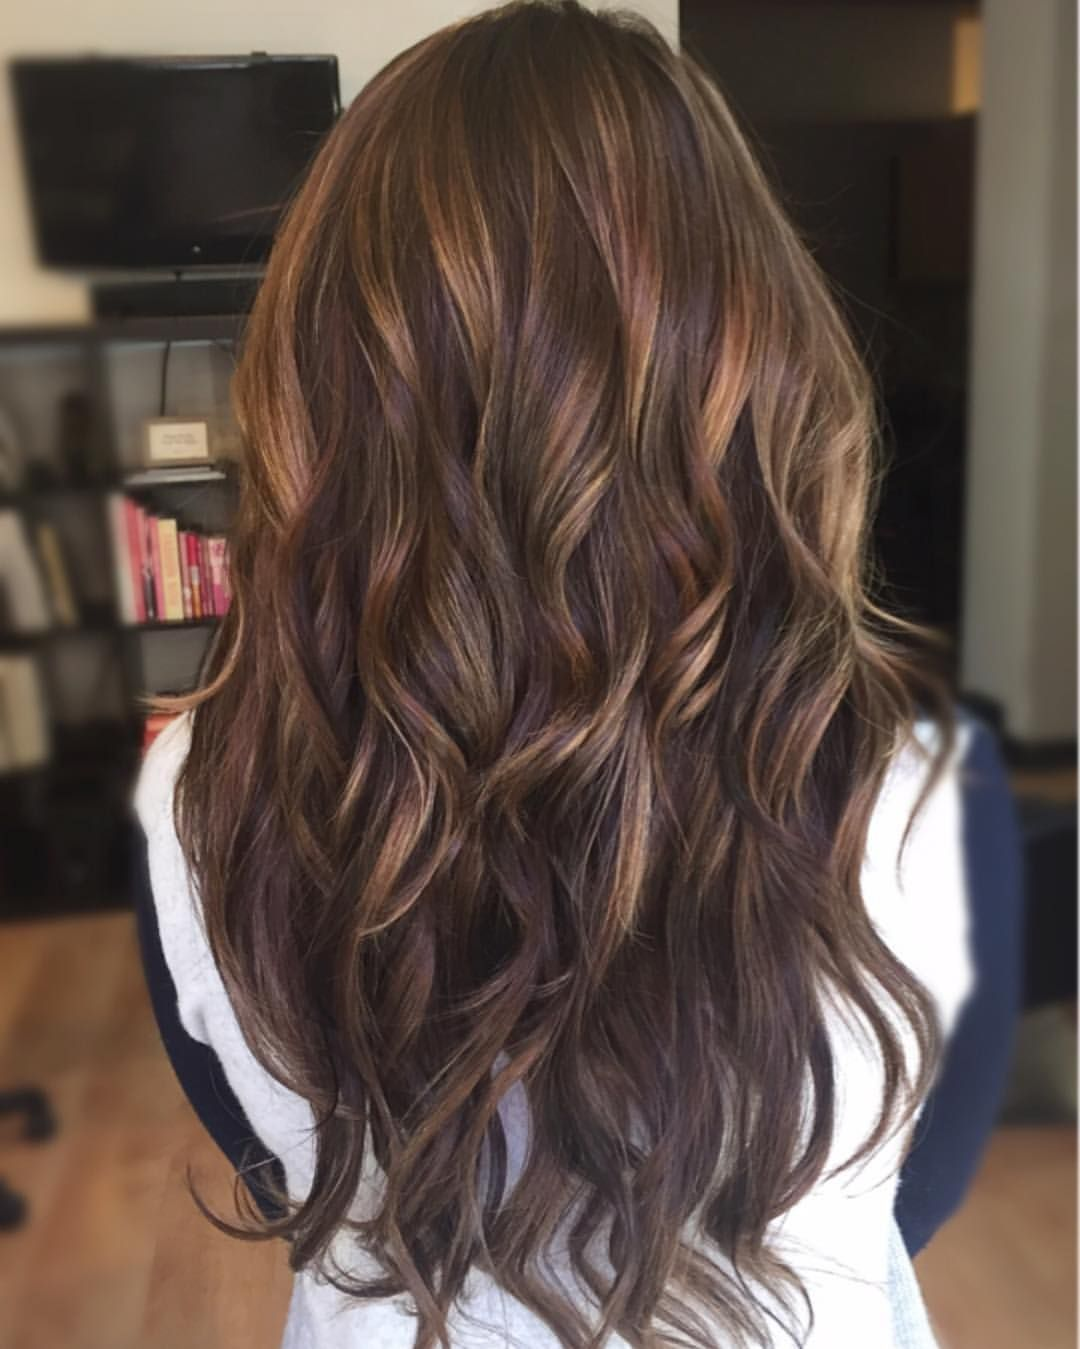 Caramel hair color boy see this instagram photo by veramstyling u  likes  beauty